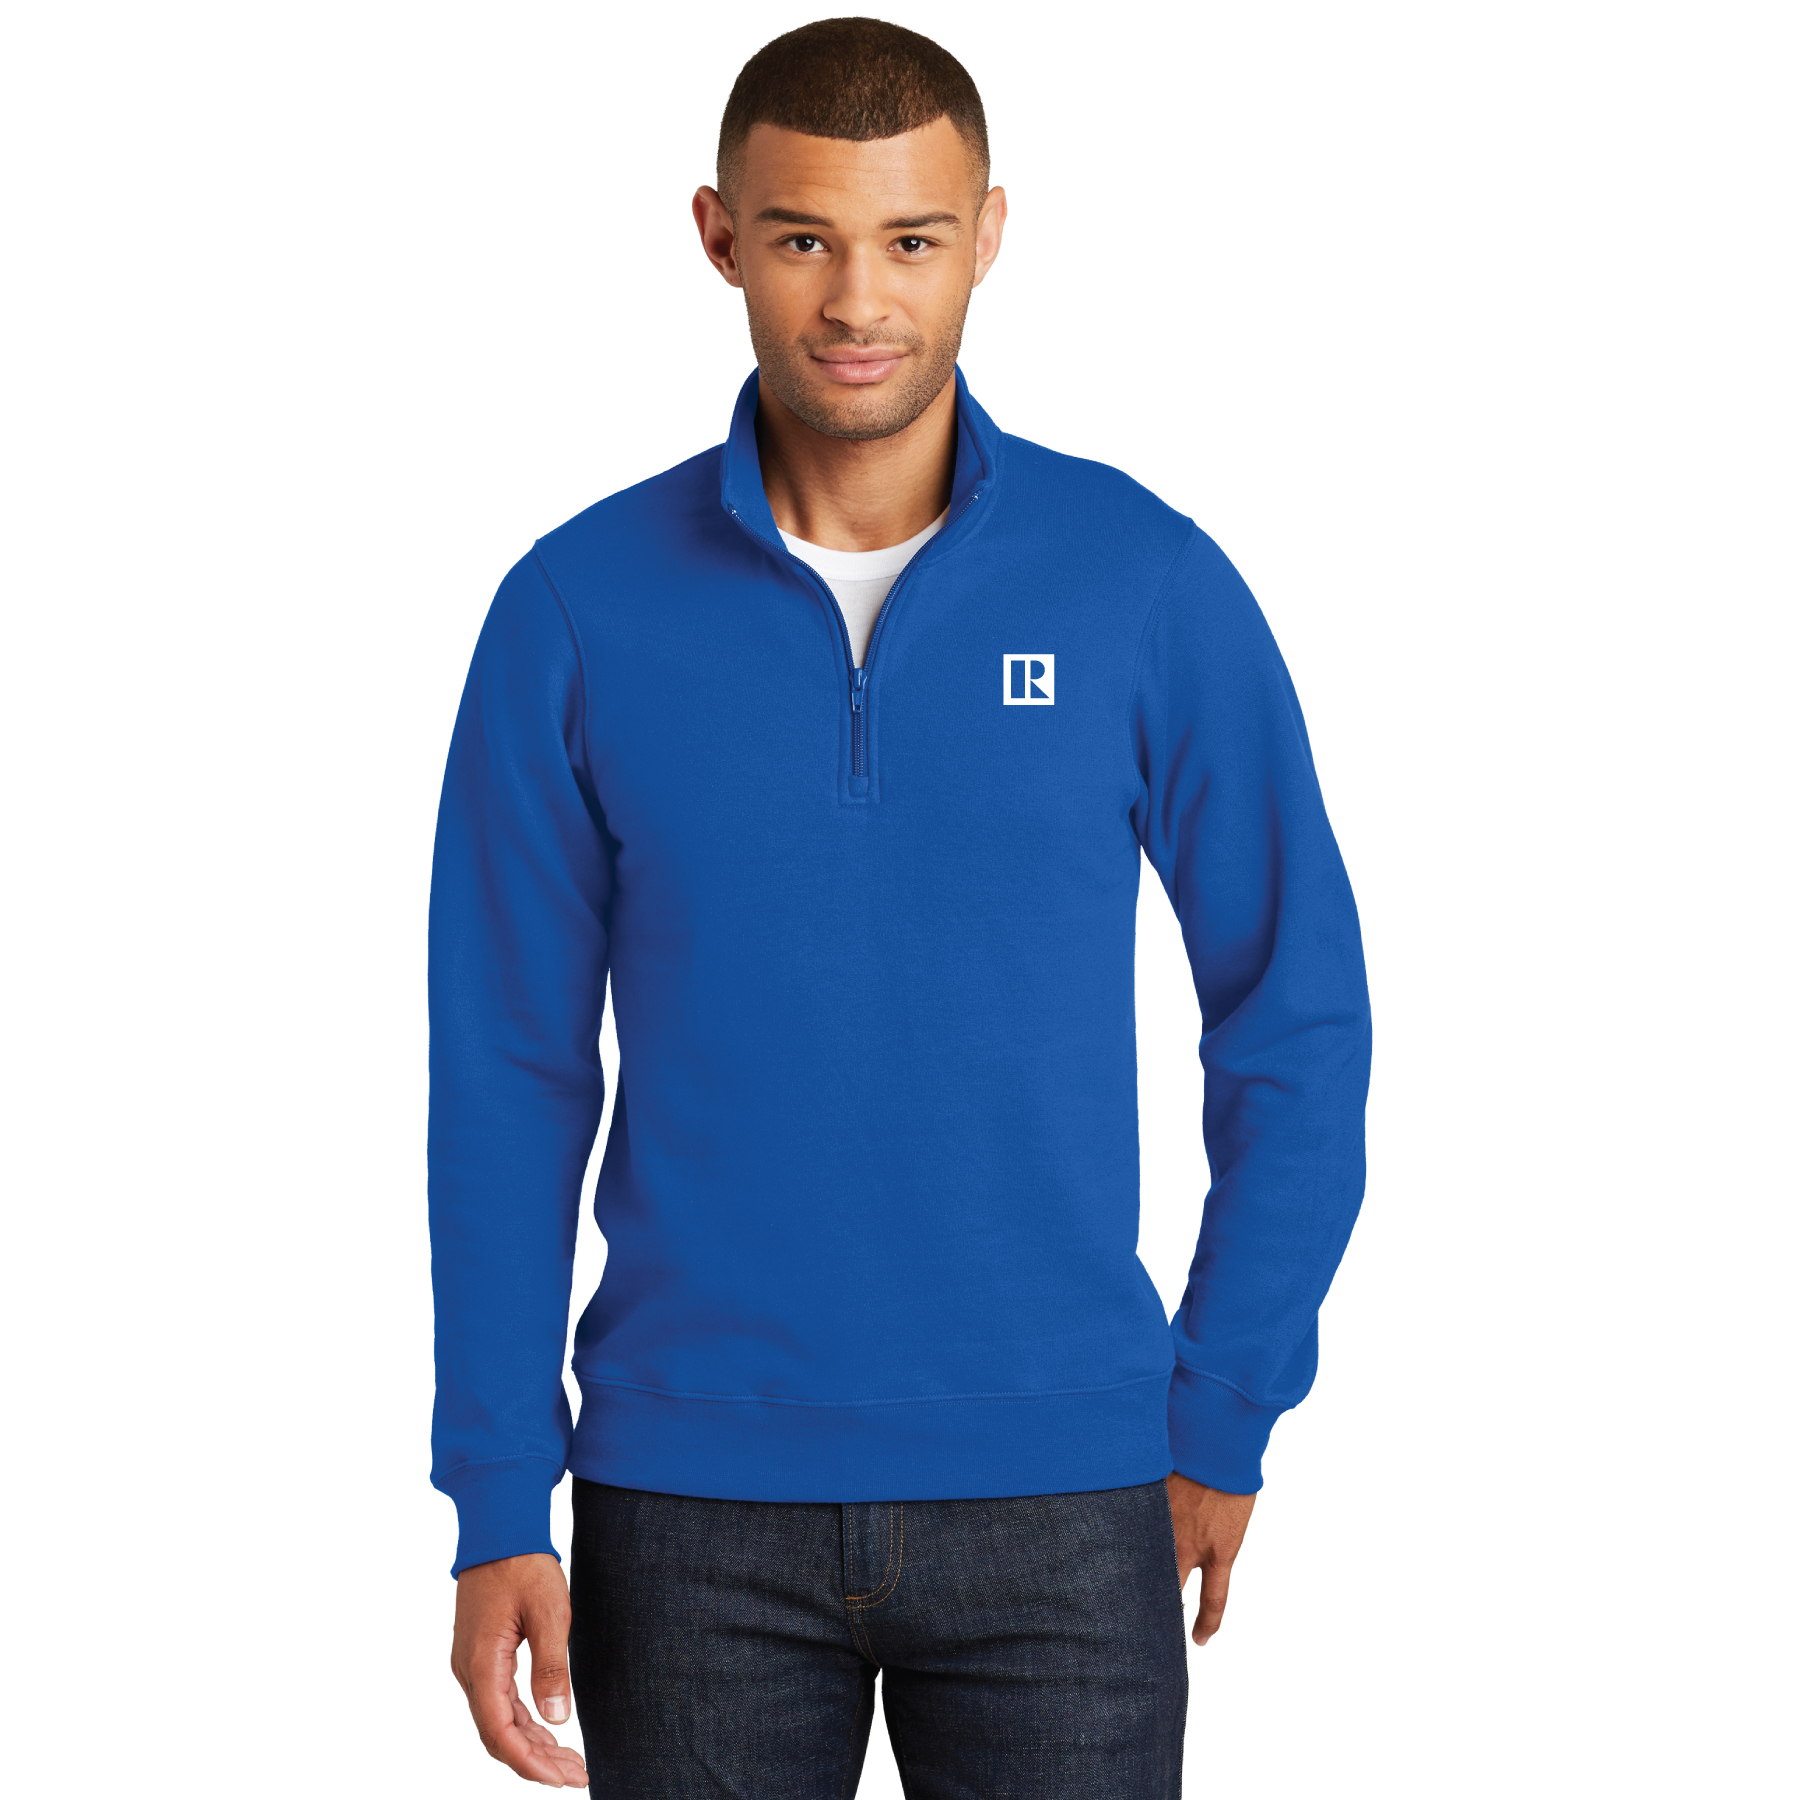 Mens Fleece 1/4-Zip Pullover Sweatshirt Pullovers,Fleeces,Long Sleeves